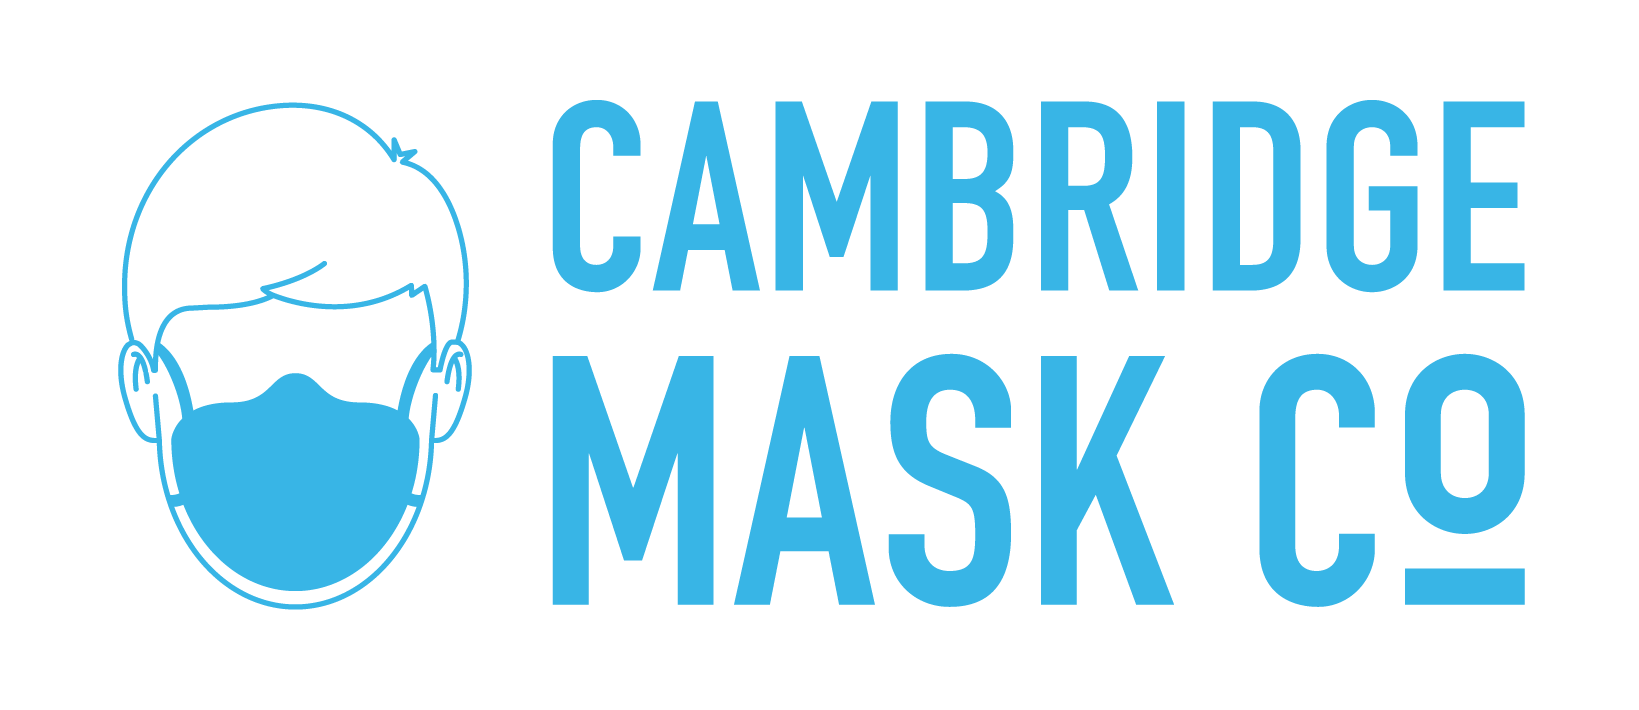 Cambridge Mask Co. Help Center home page